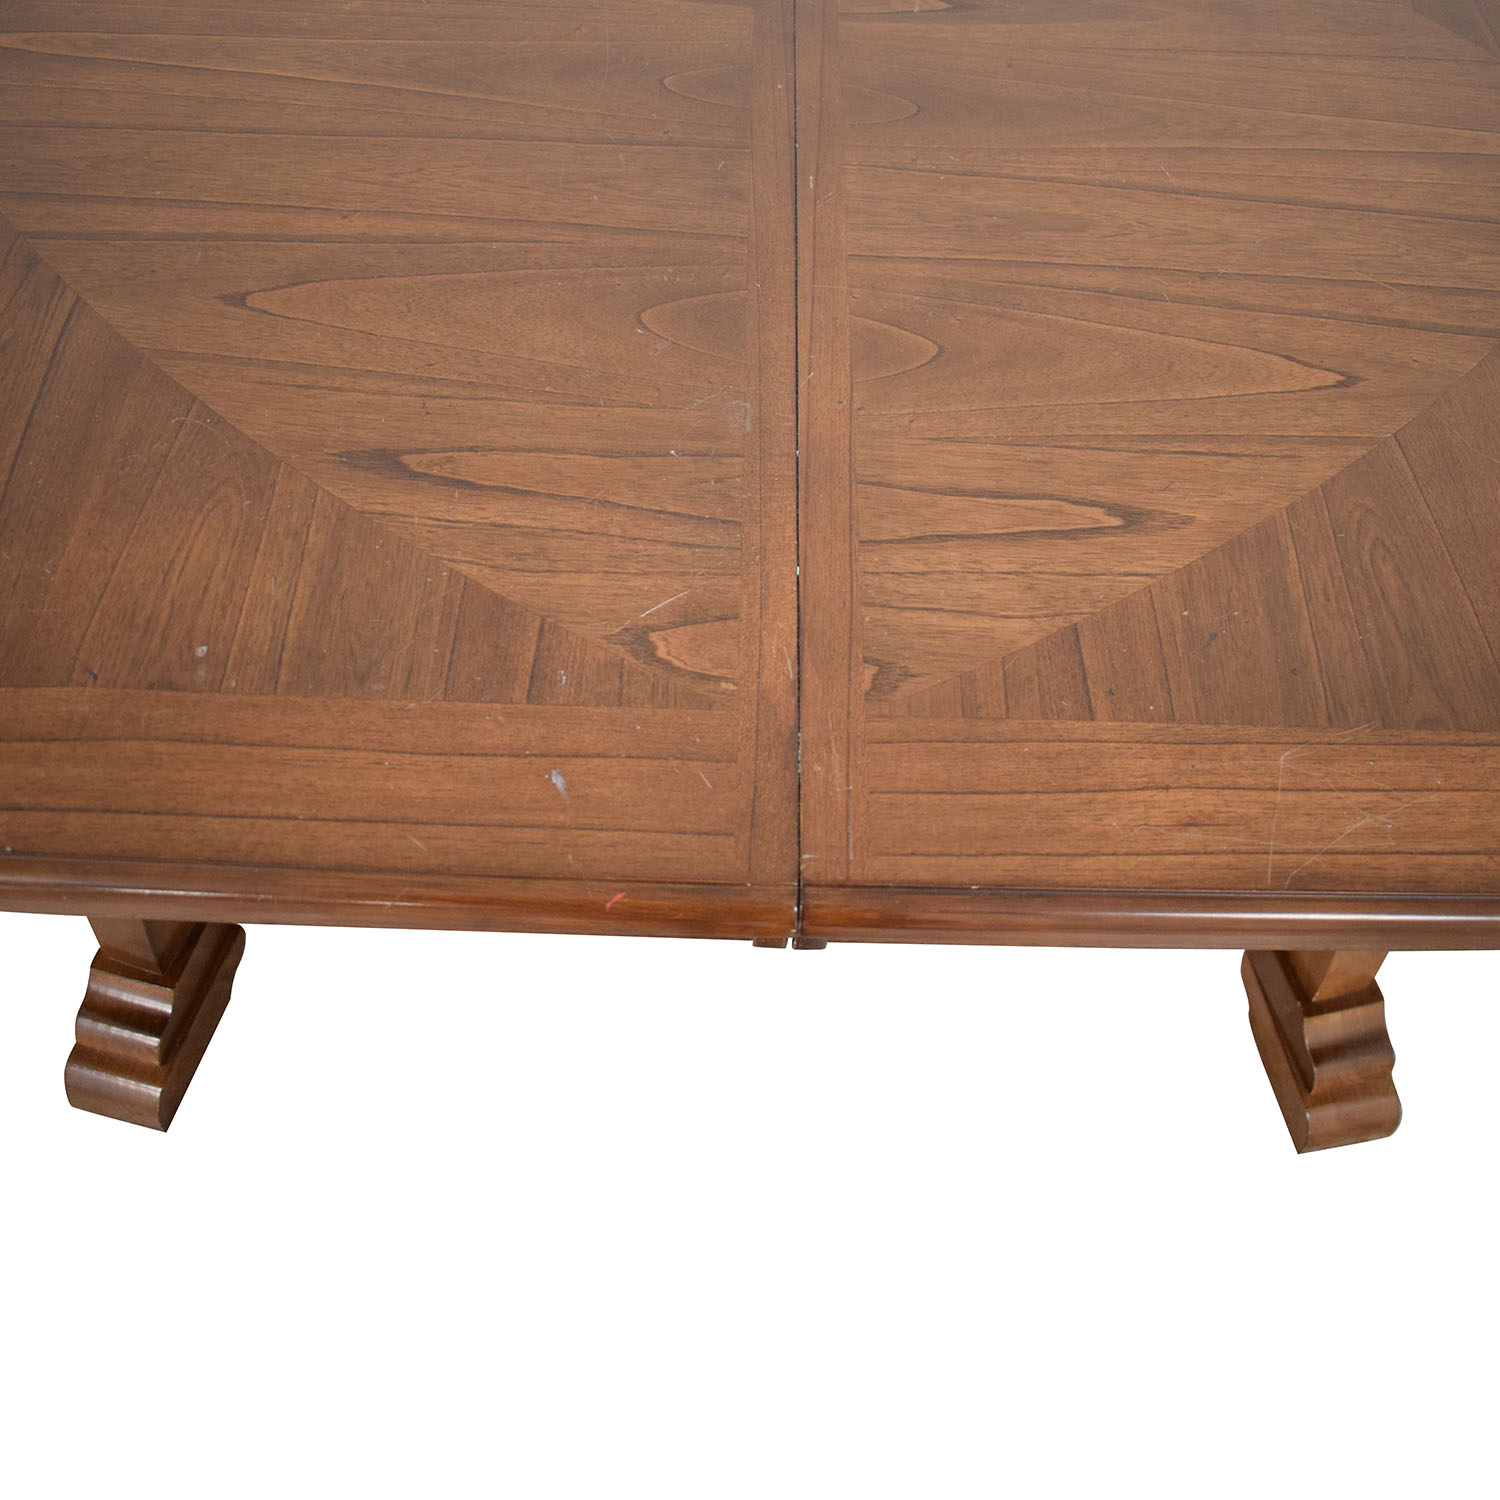 buy Raymour & Flanigan Raymour & Flanigan Wood Expandable Dining Table online